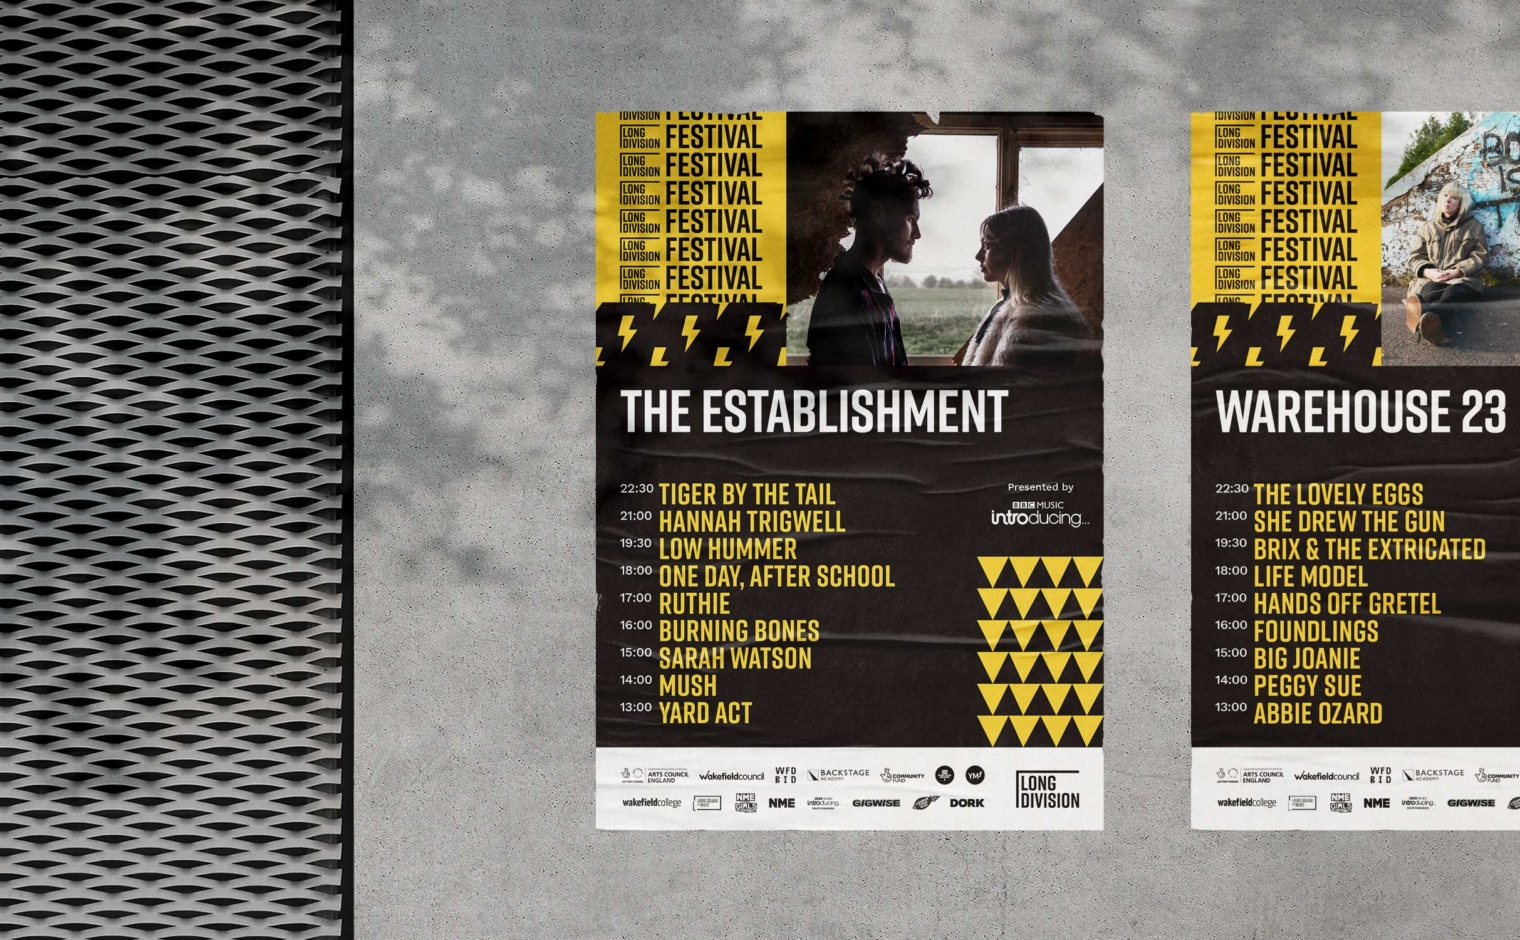 Long Division Festival venue line-up posters for The Establishment and Warehouse 23, Wakefield